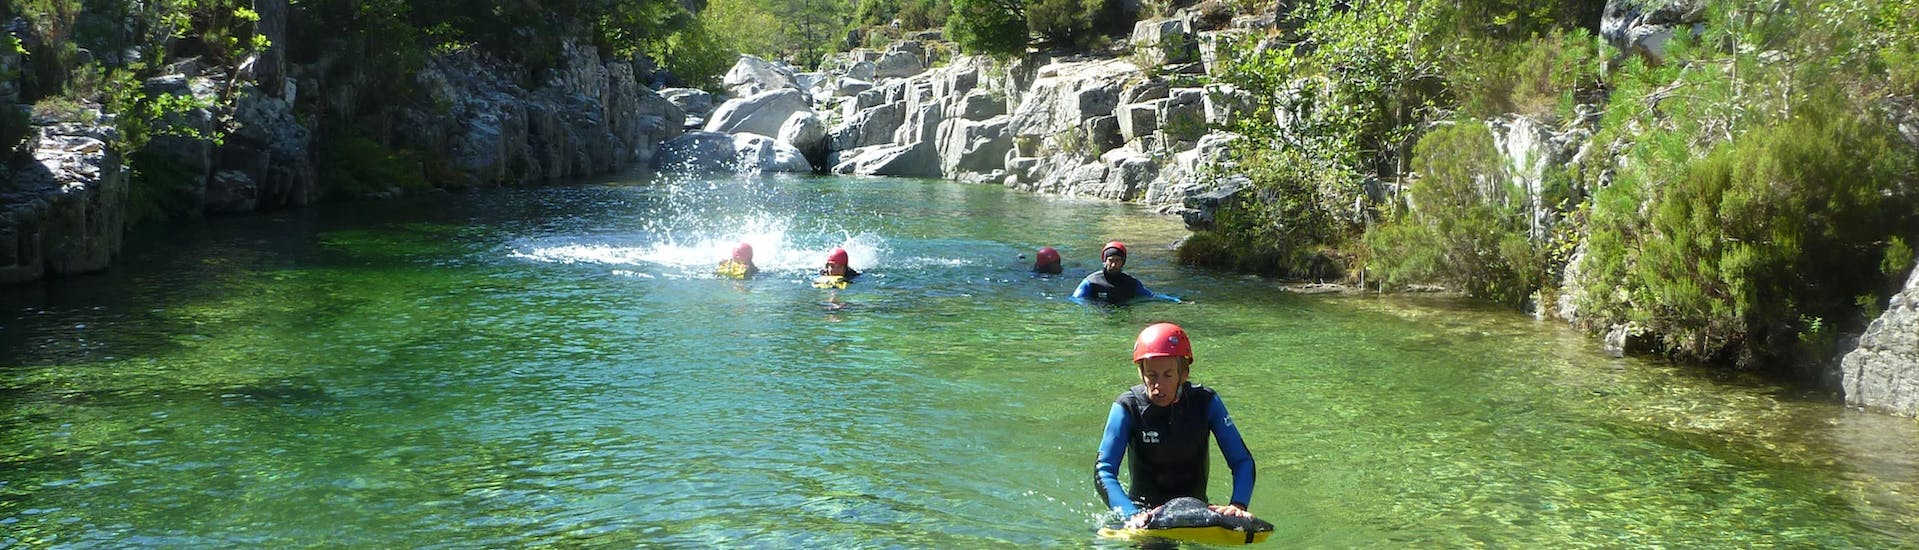 A group is swimming in the canyon du Tavignano during the Canyoning Full day with Canyon Corse.